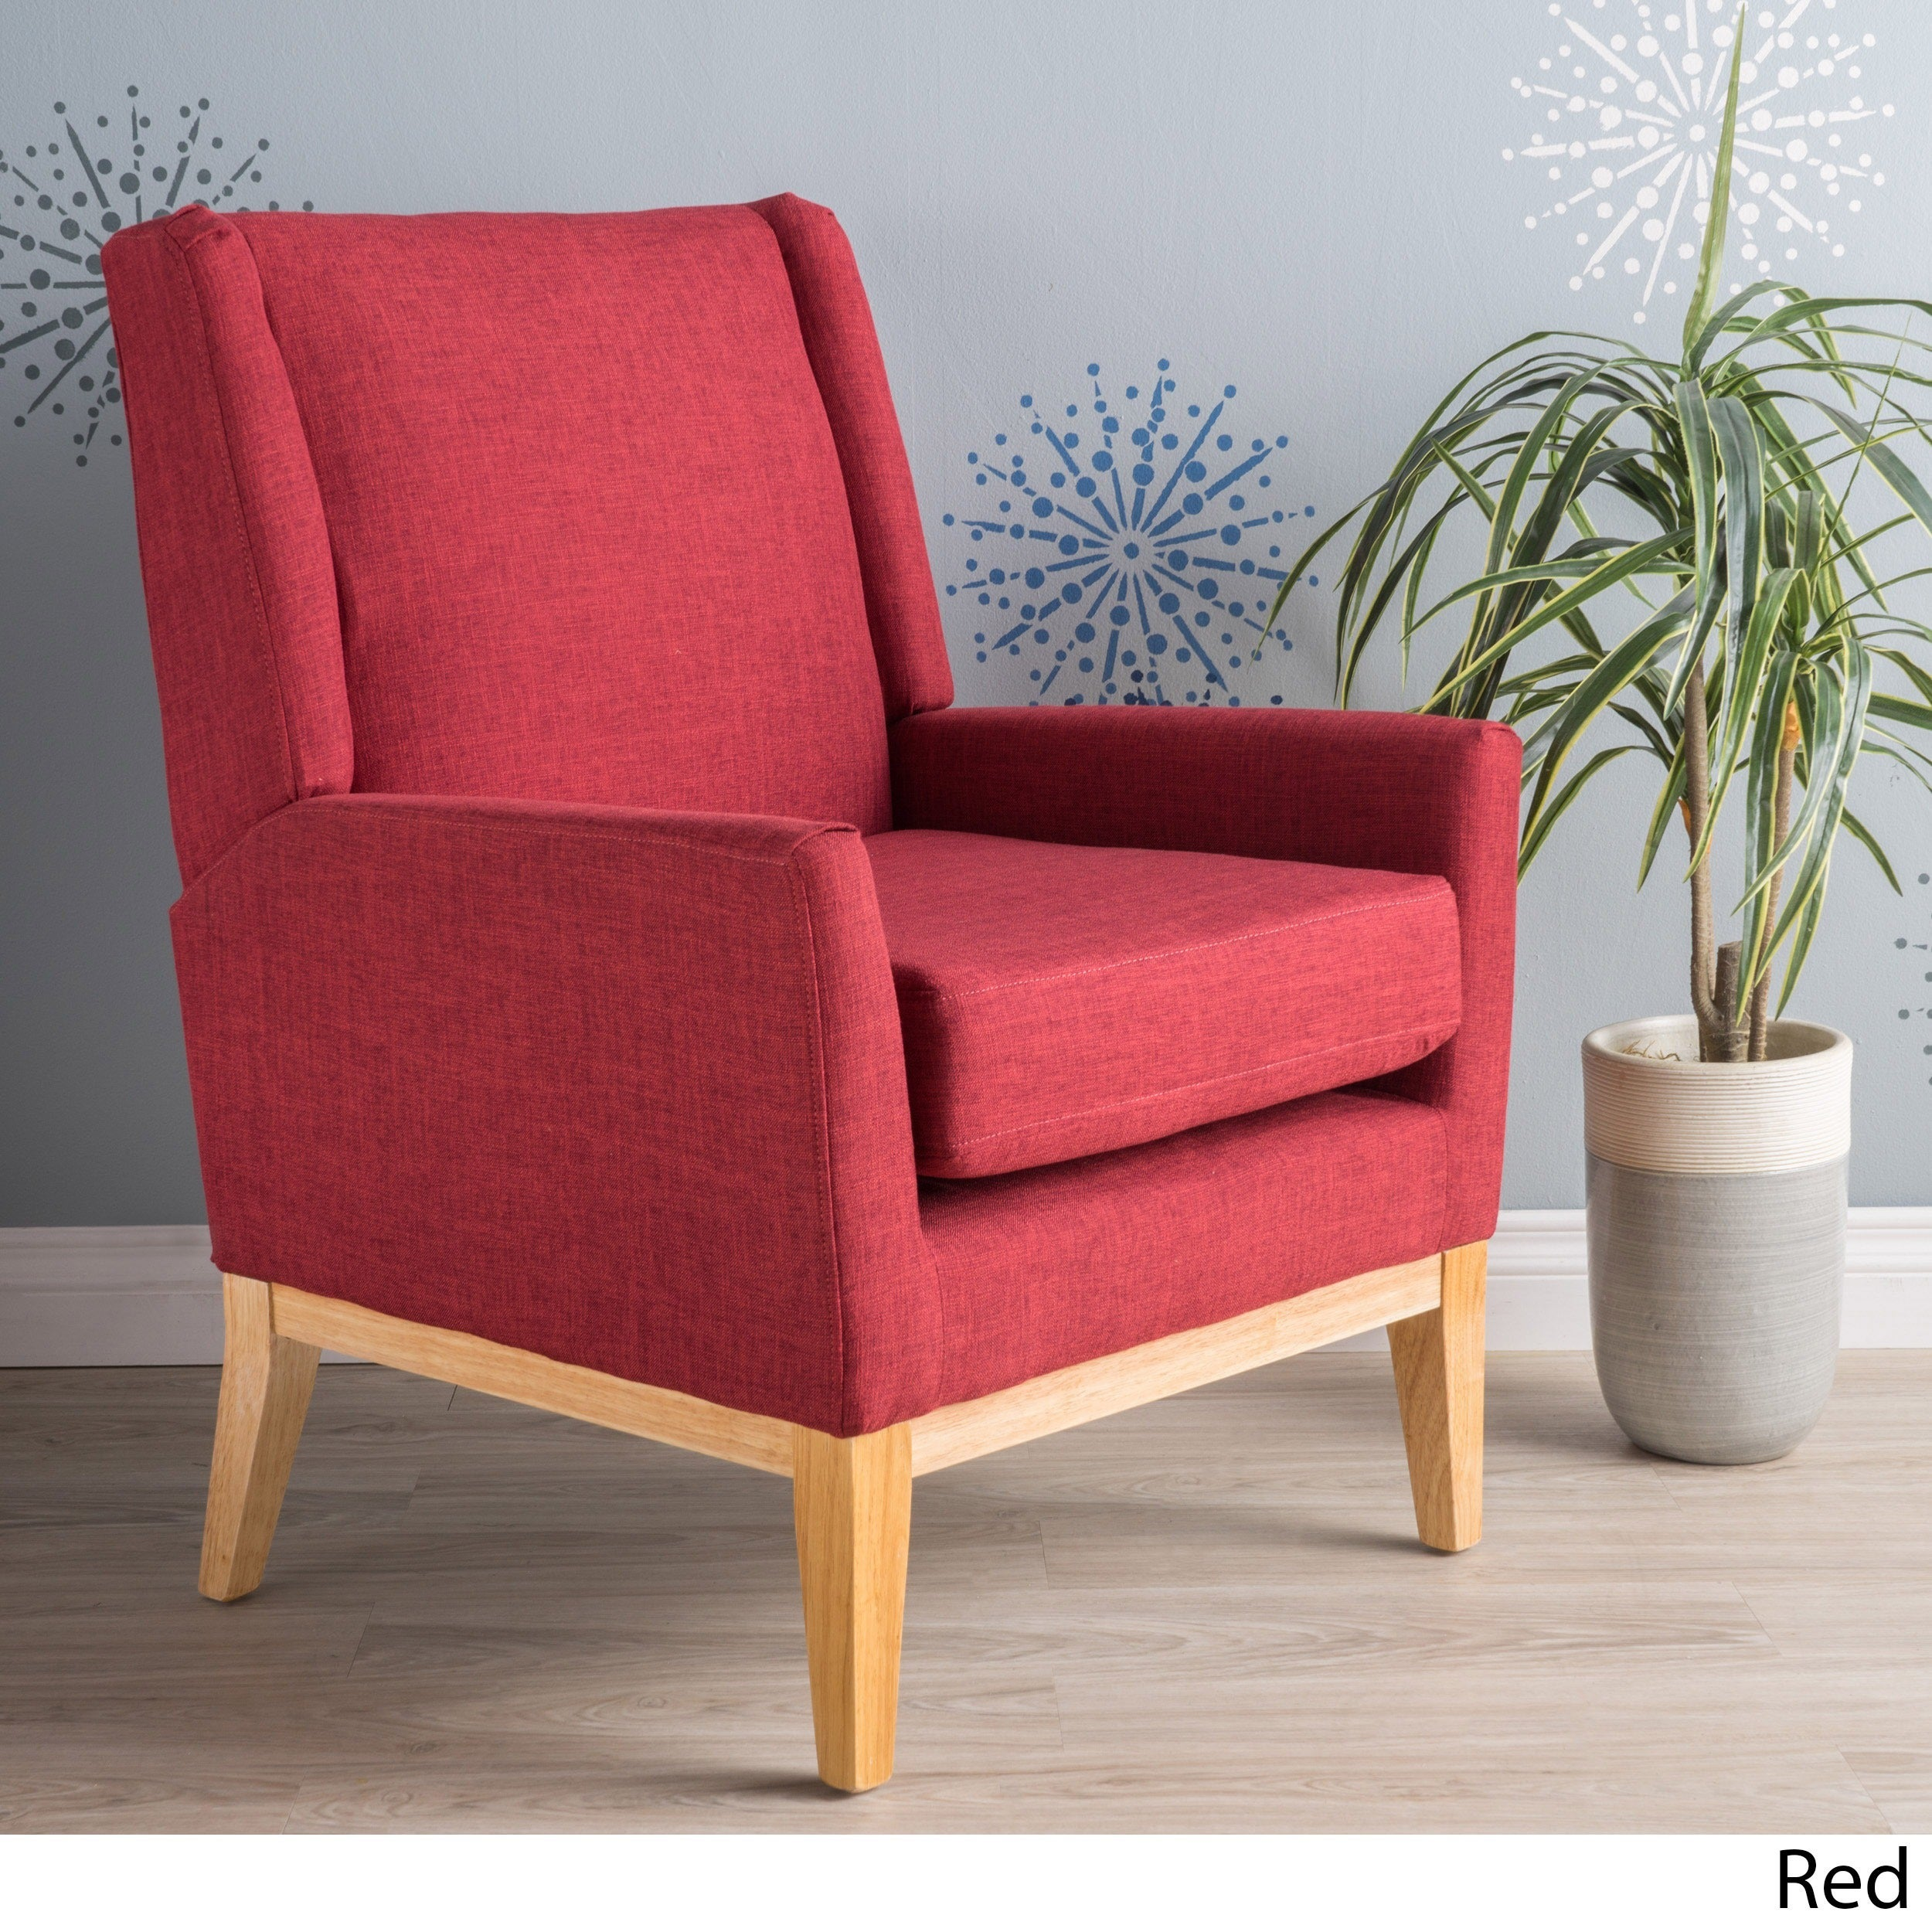 Futuristic Red Pattern Accent Chair Decoration Ideas